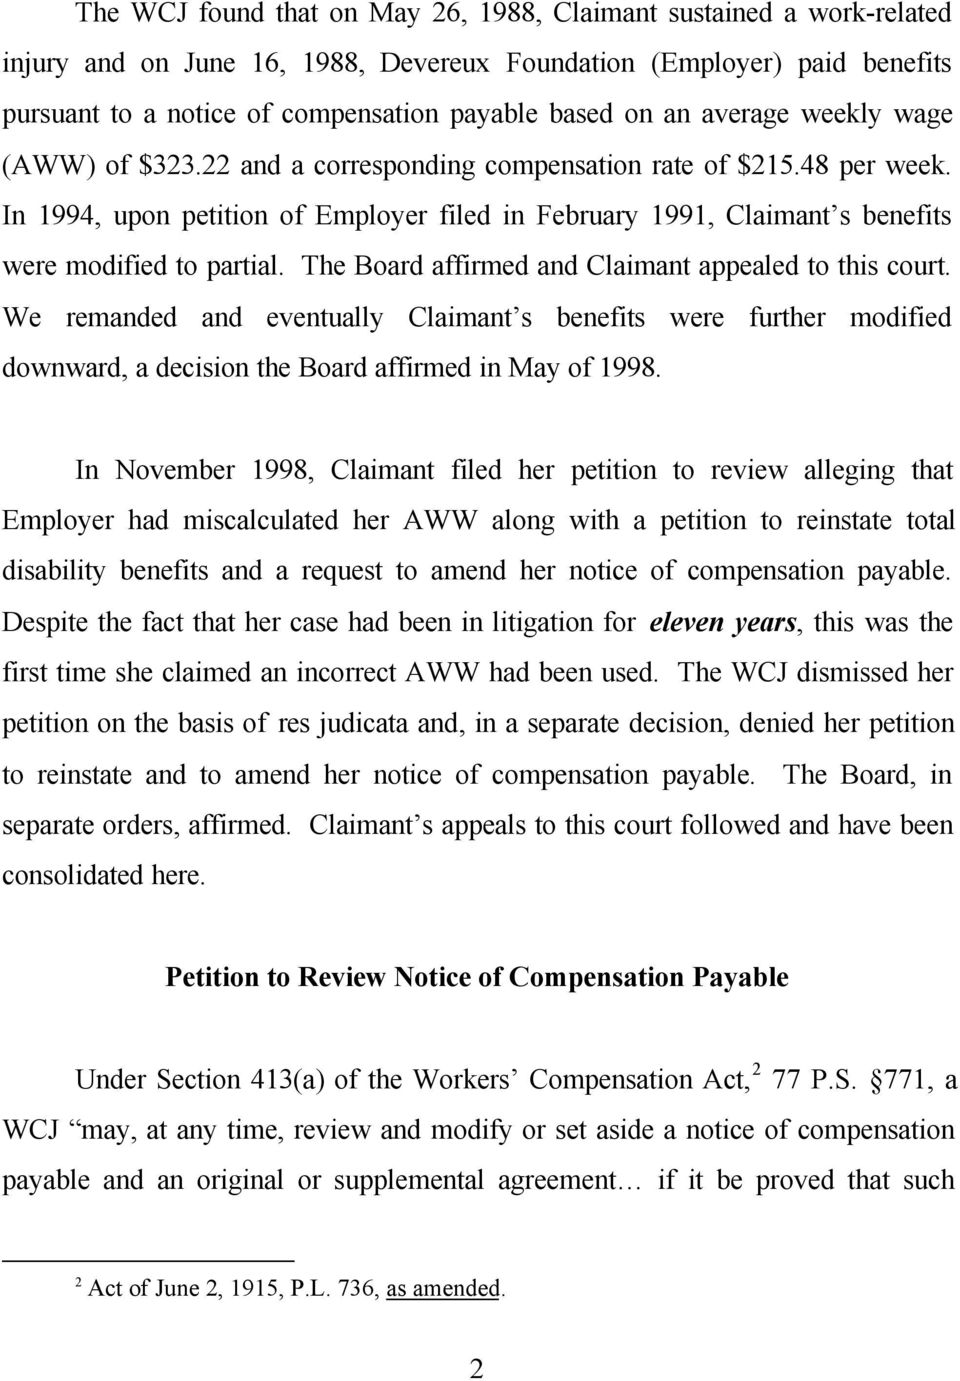 In 1994, upon petition of Employer filed in February 1991, Claimant s benefits were modified to partial. The Board affirmed and Claimant appealed to this court.